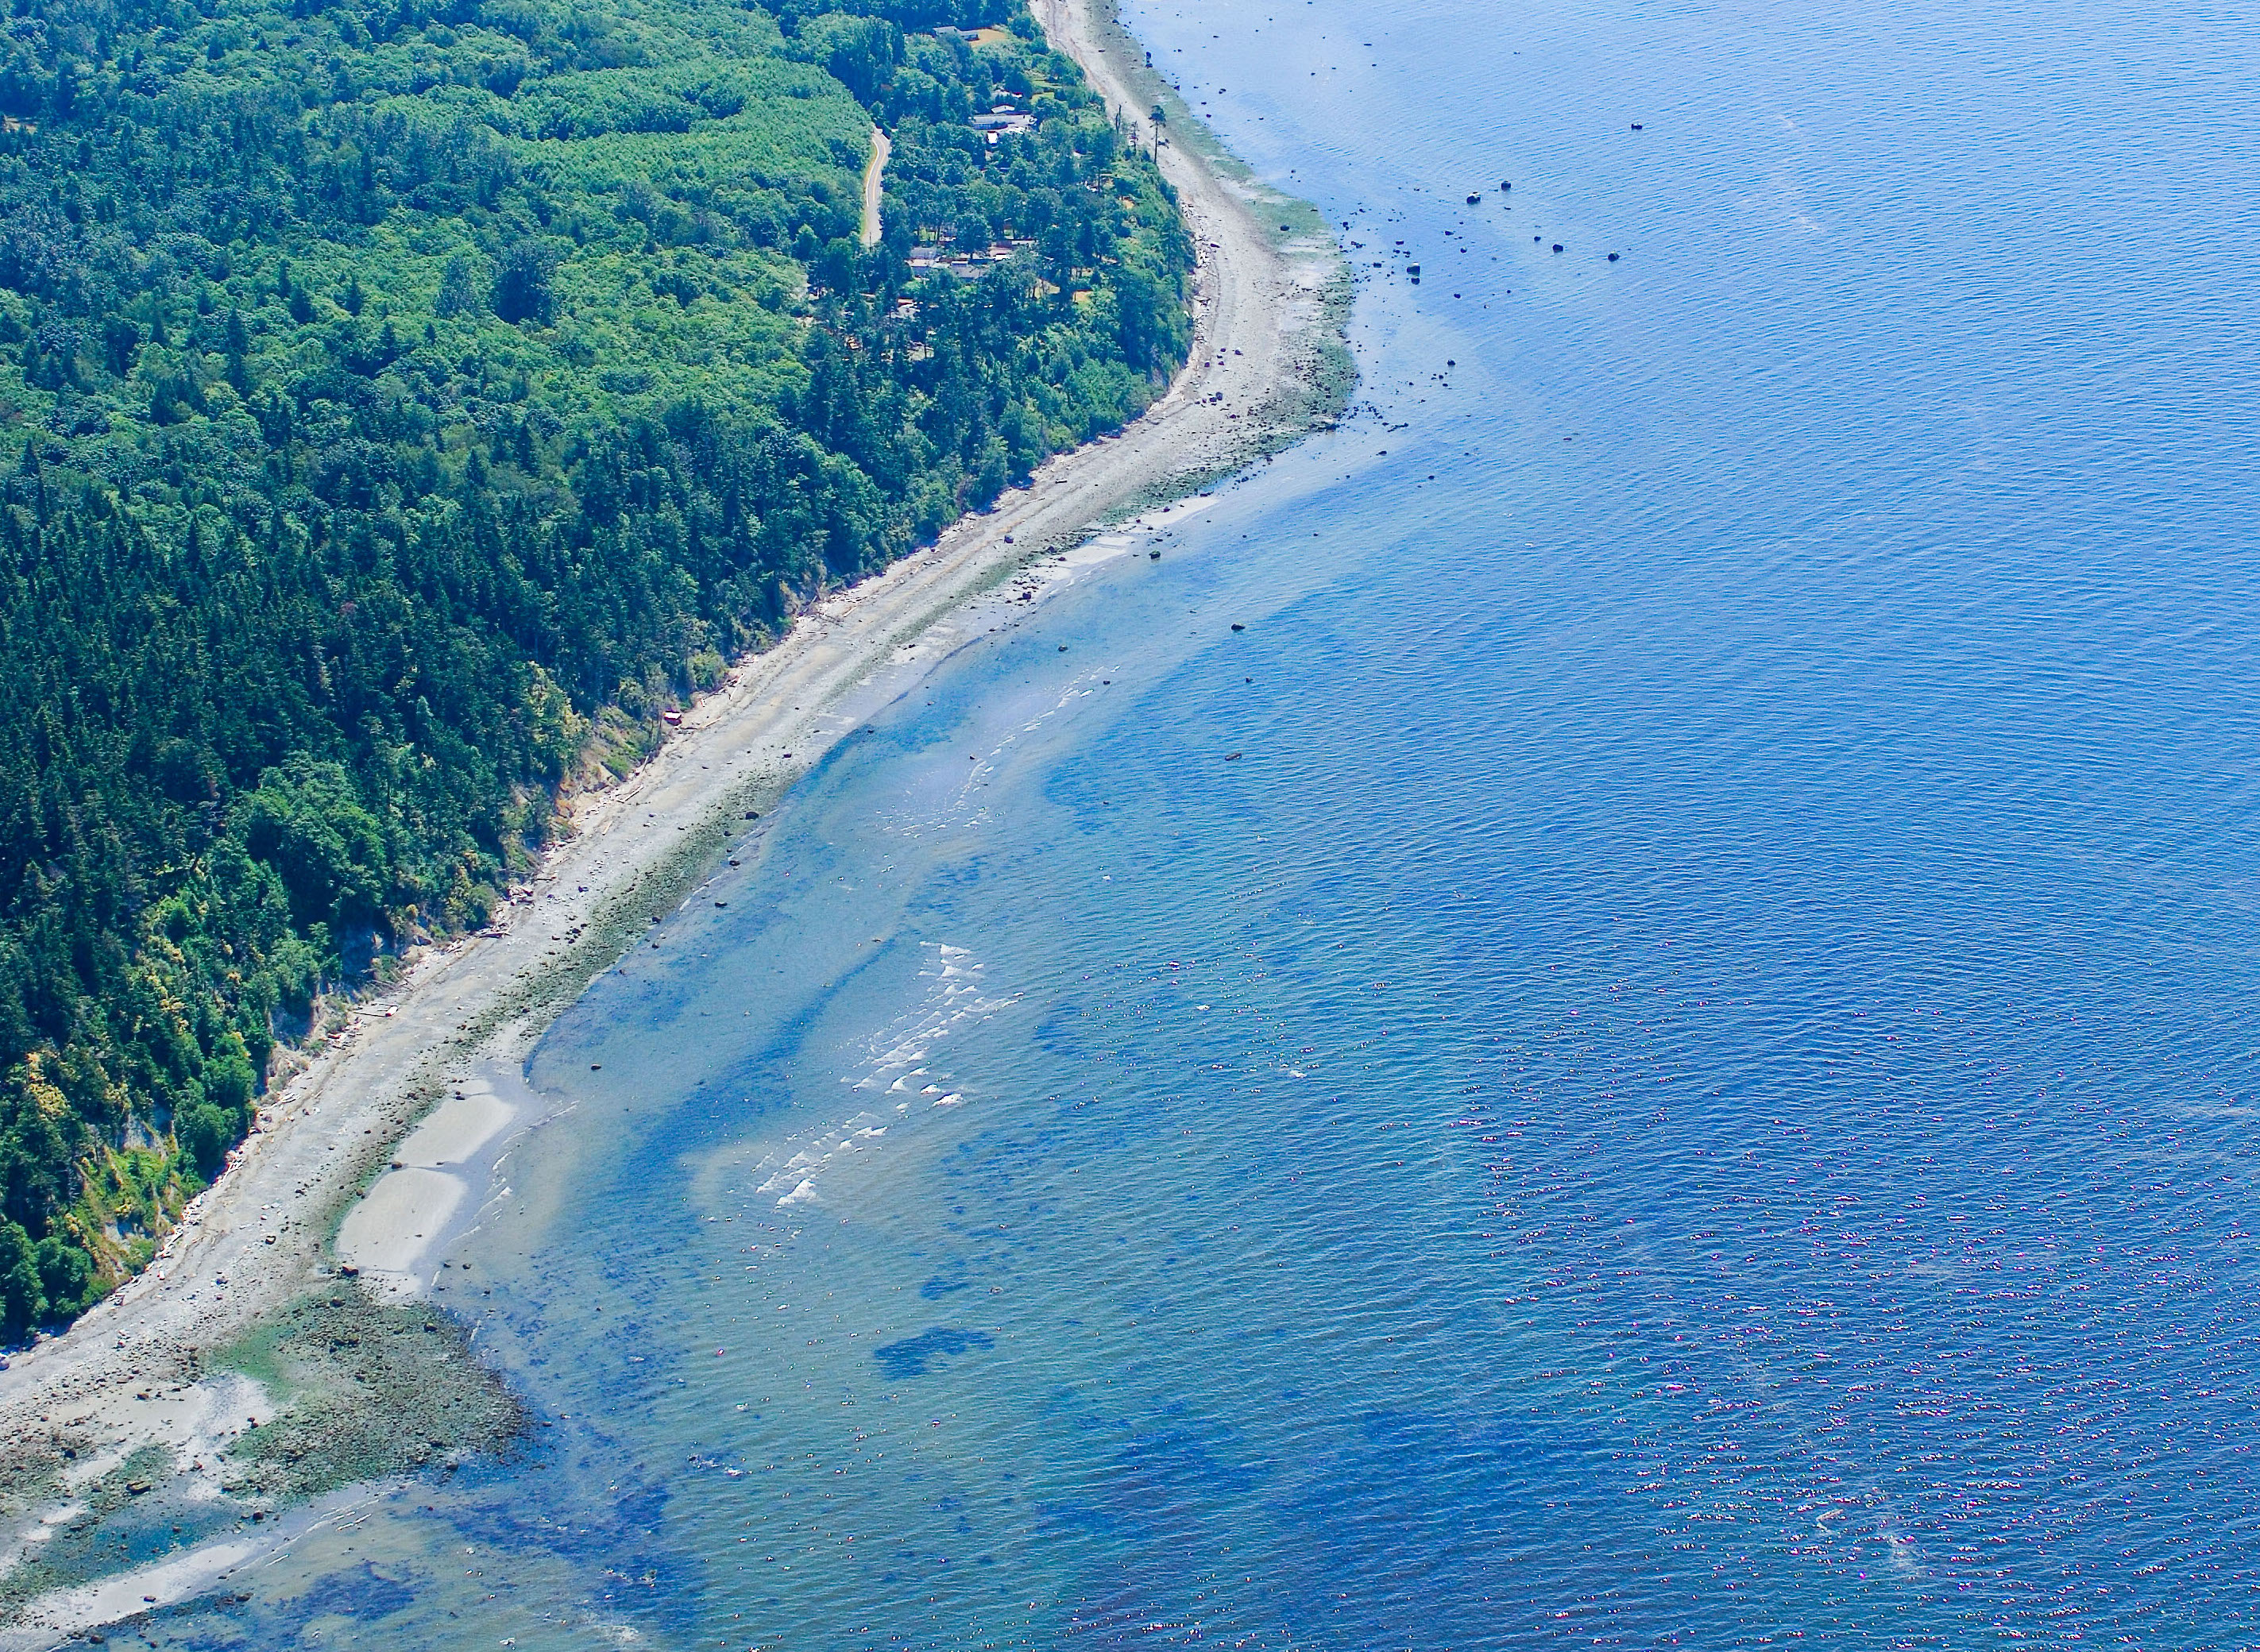 Port Gamble S Klallam Tribe Natural Resources